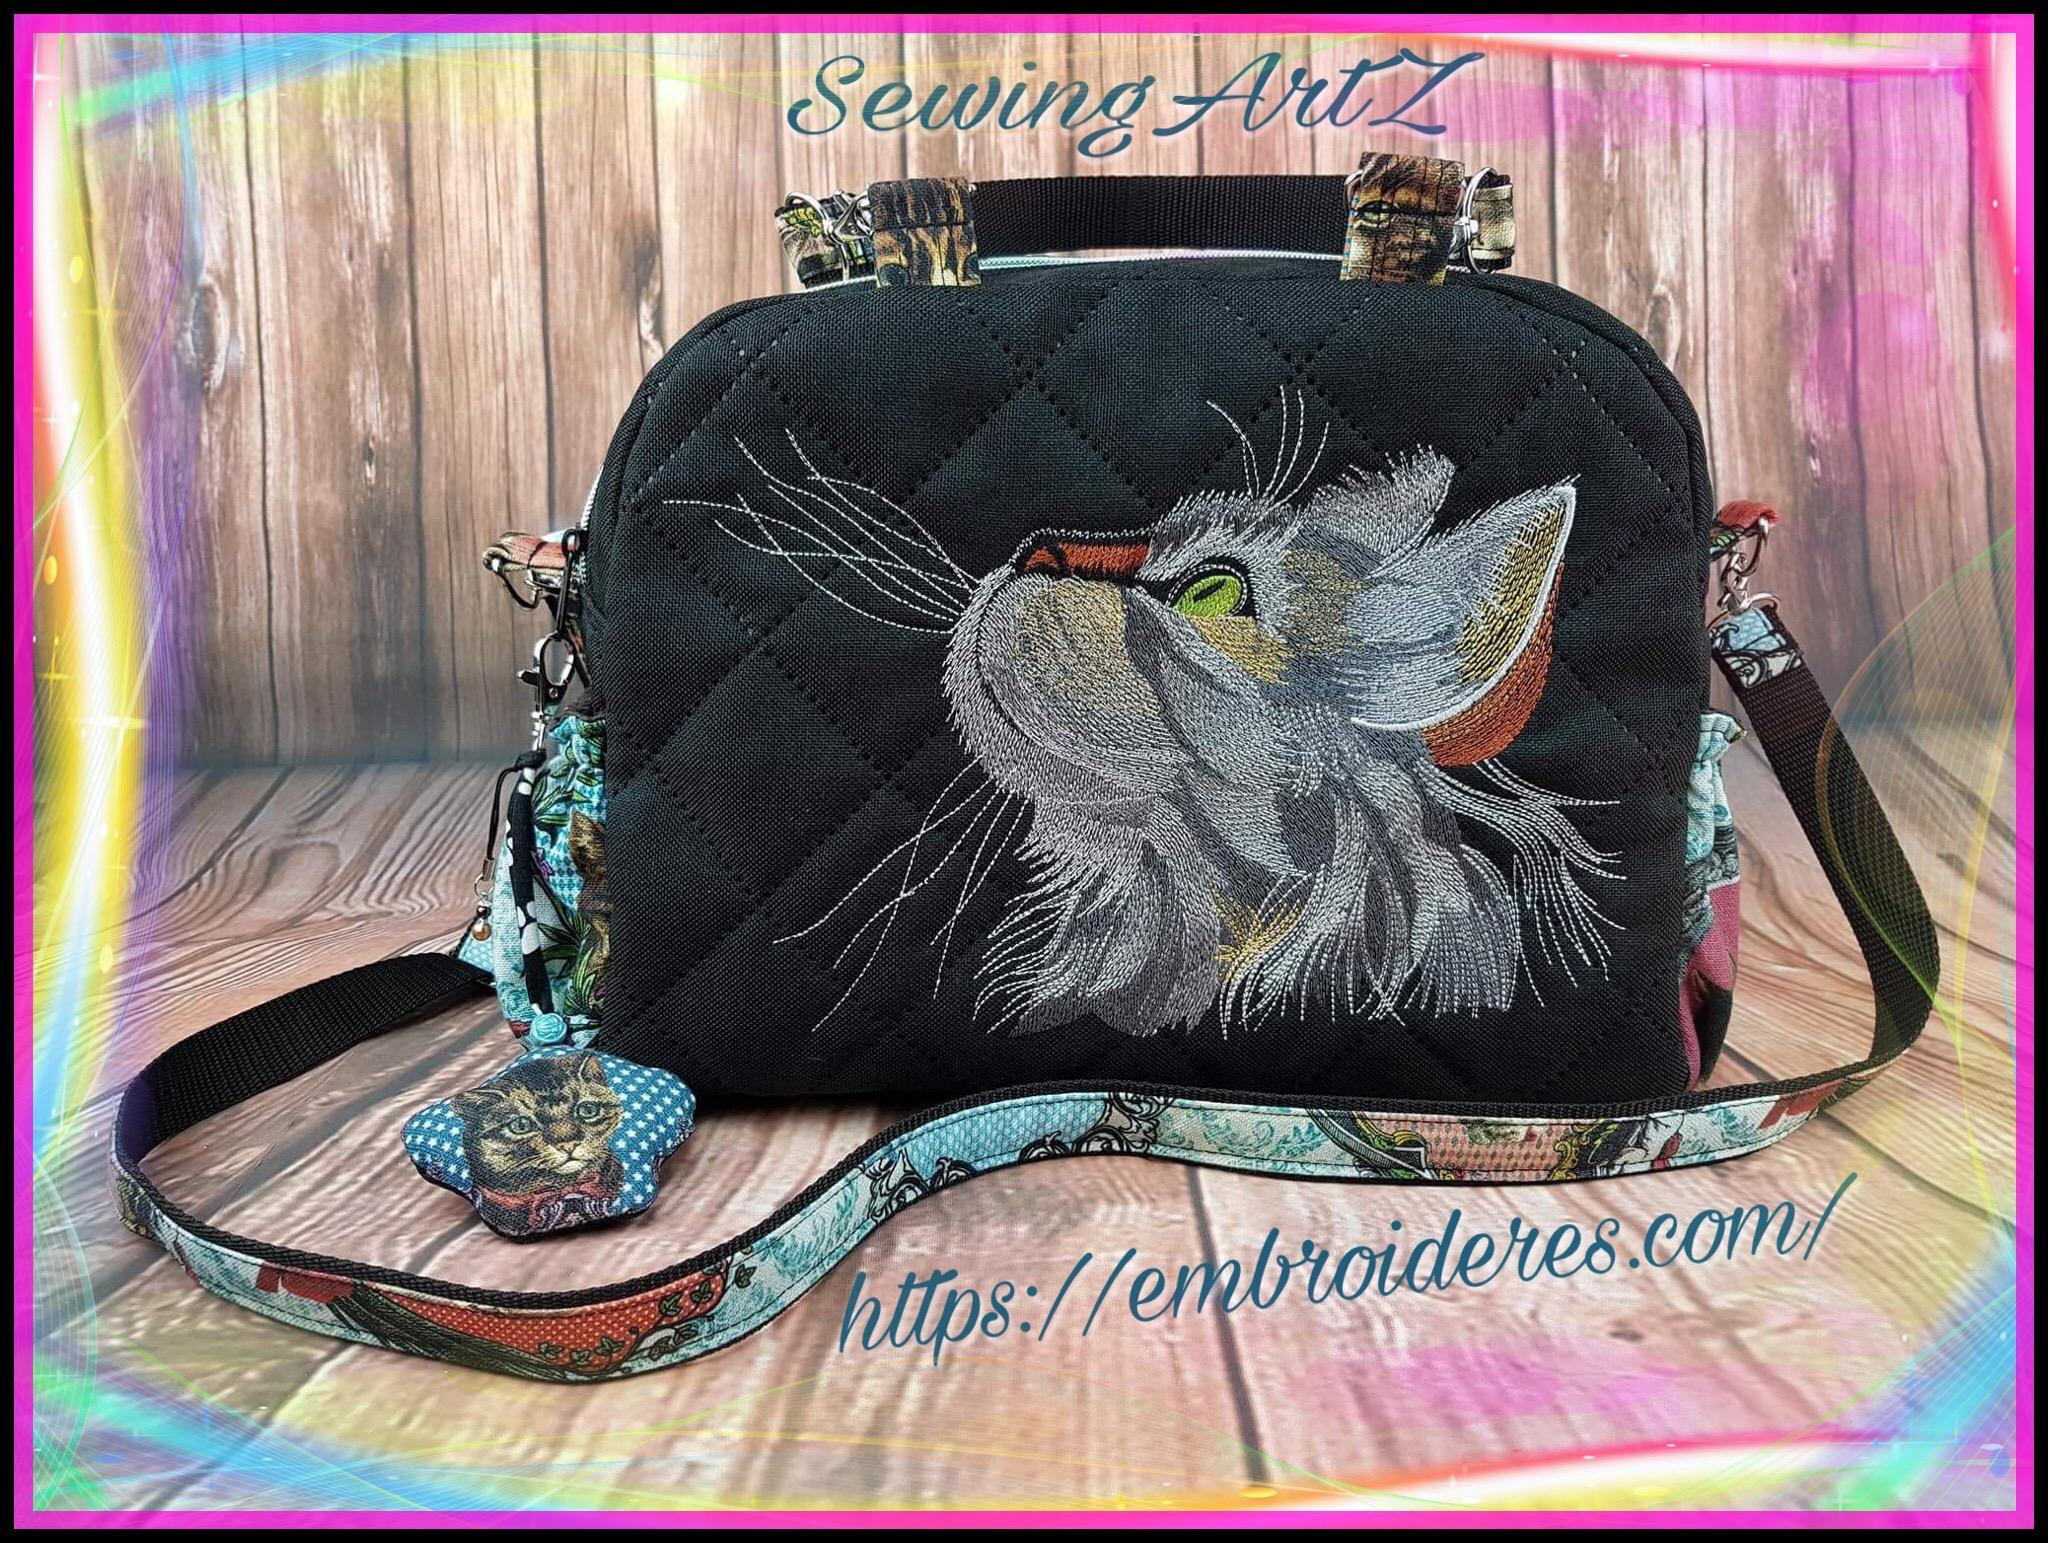 Women Handbag with curious cat embroidery design